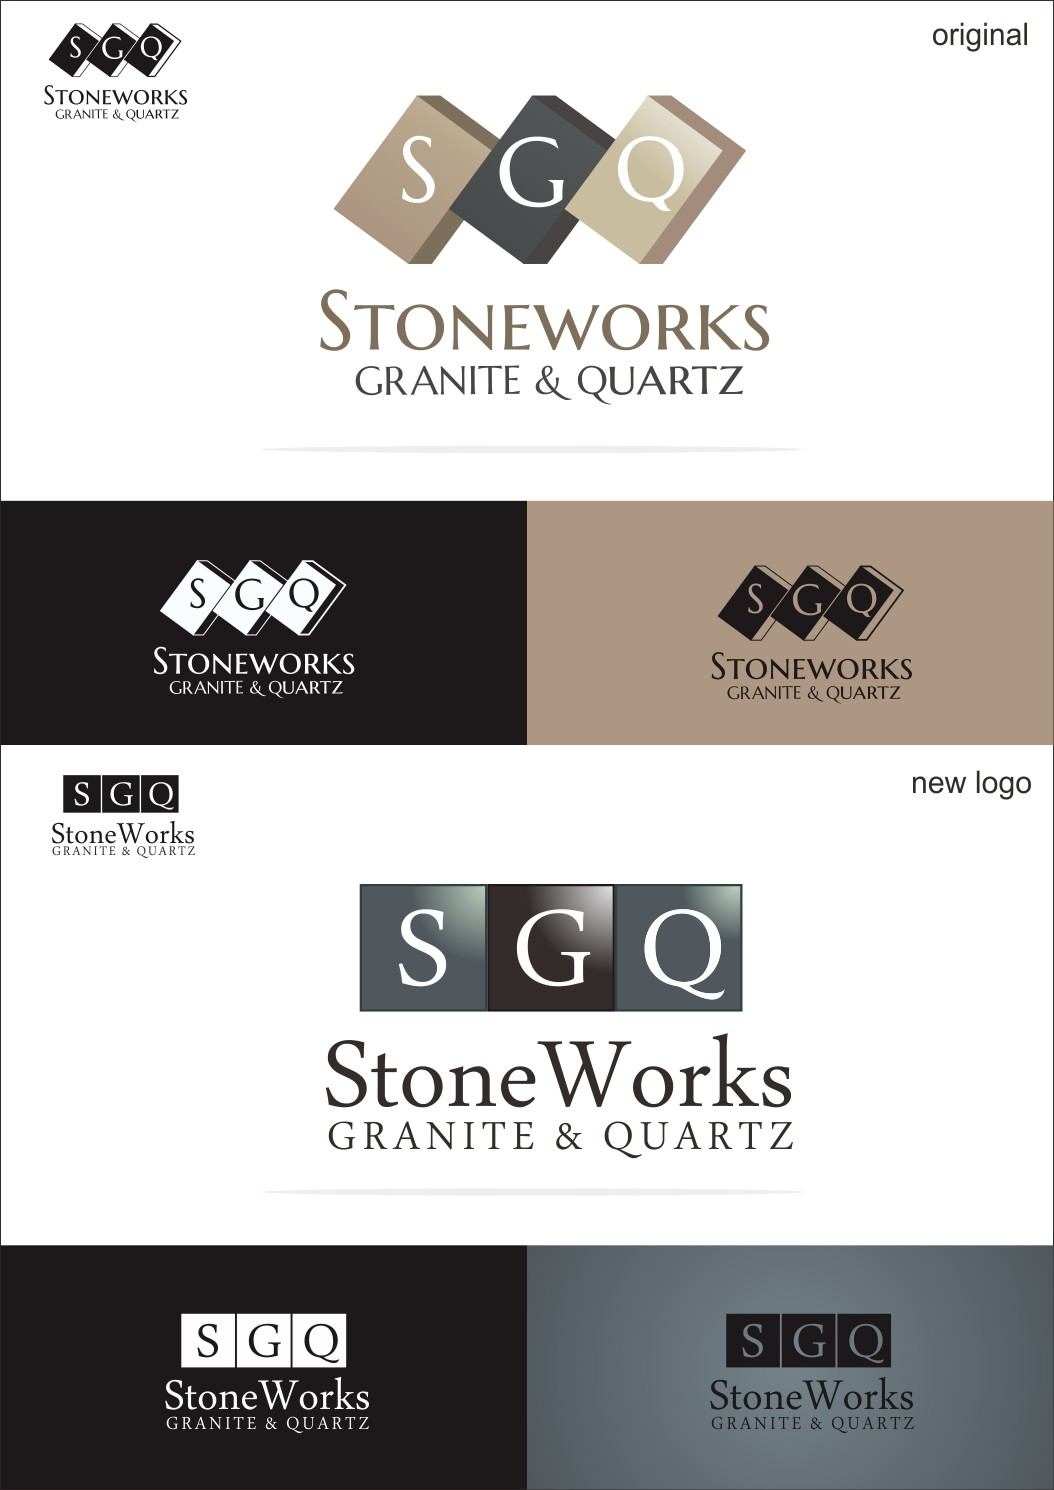 New logo wanted for Stoneworks Granite and Quartz